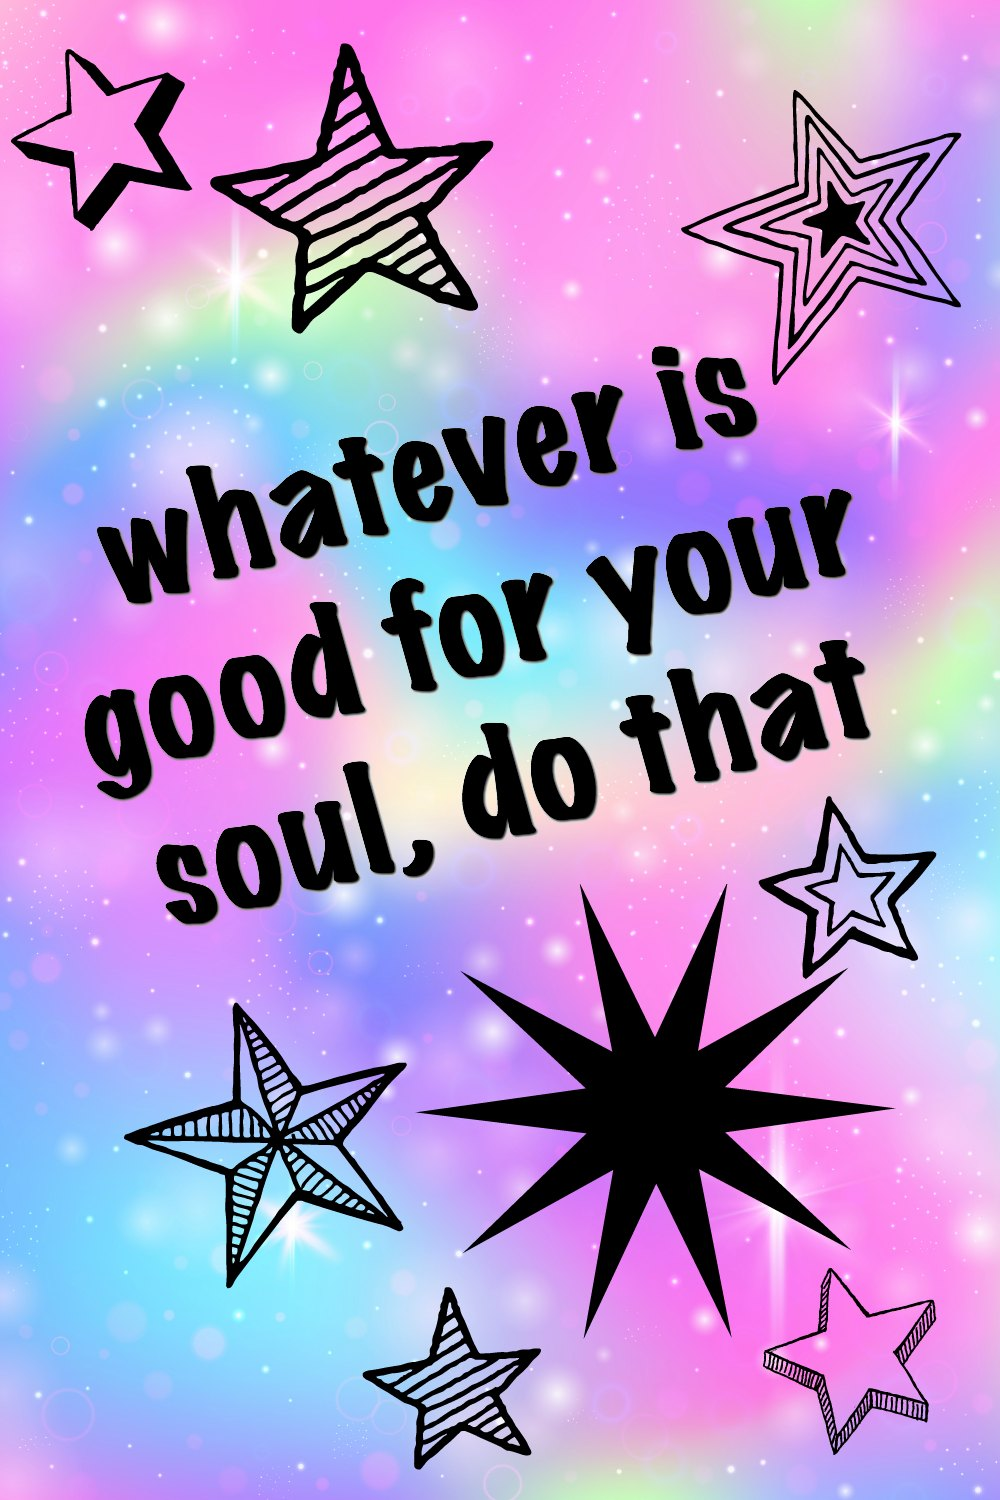 soul quotes | quotes for the soul | happy quotes |inspirational quotes